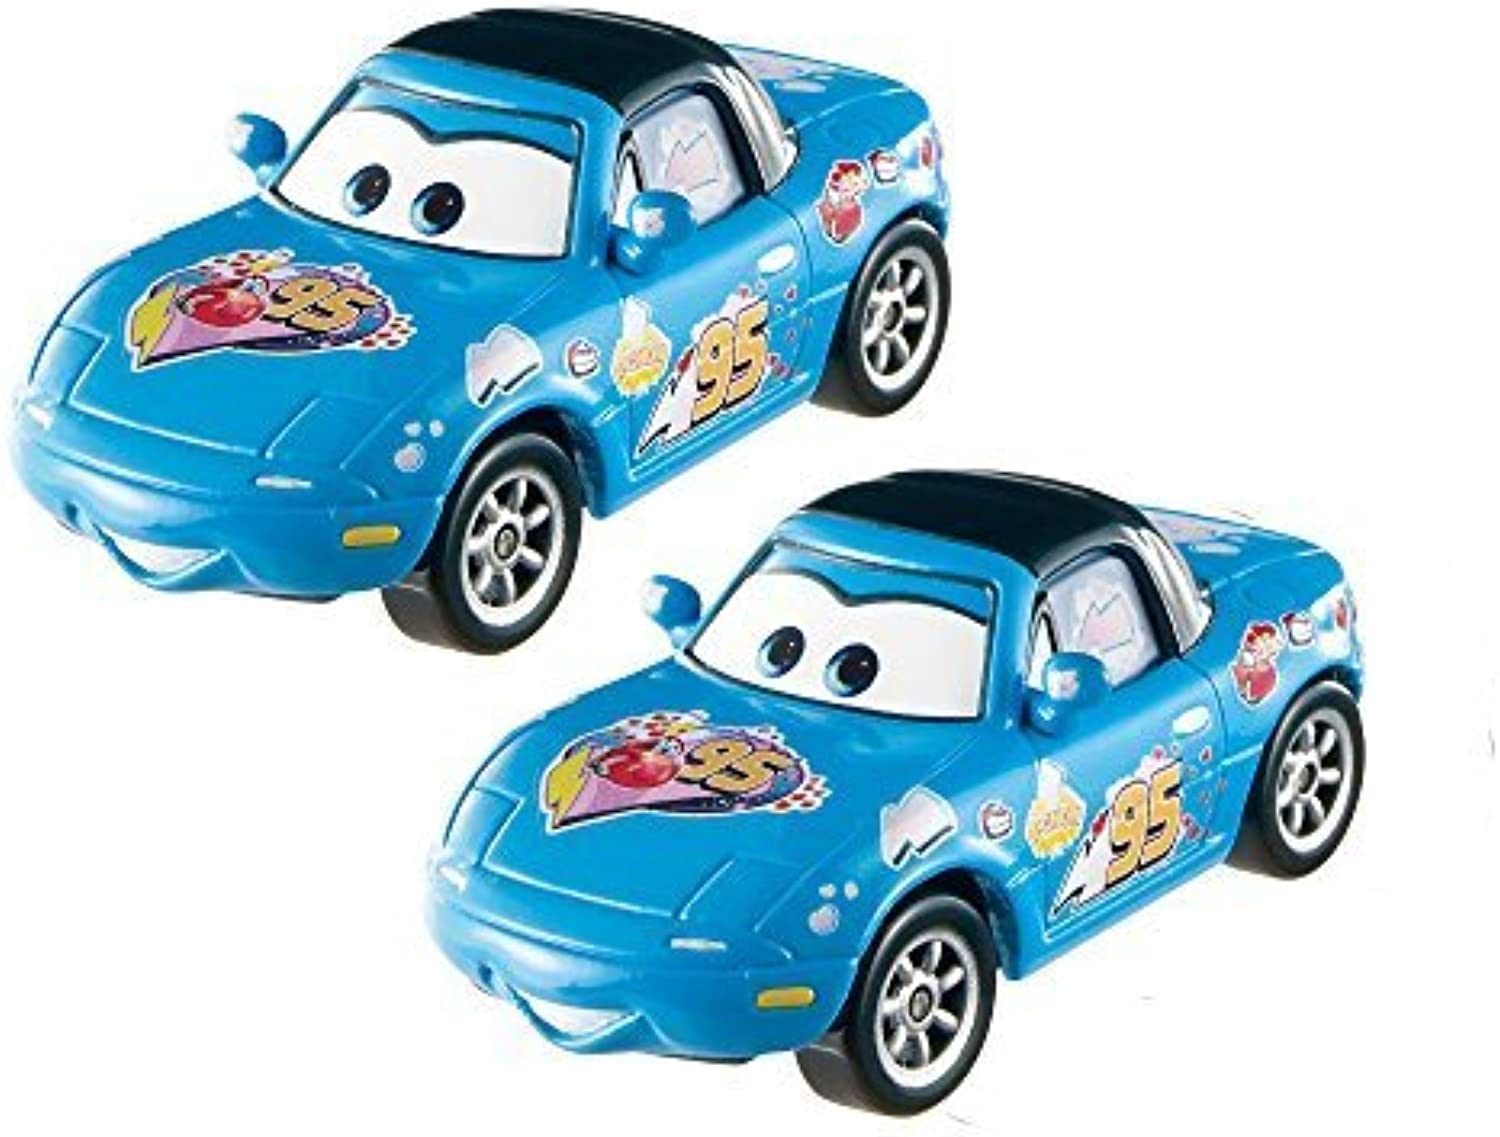 Disney Pixar Cars Diecast Character Dinoco Mia & Tia Vehicle (2 Pack) by Mattel